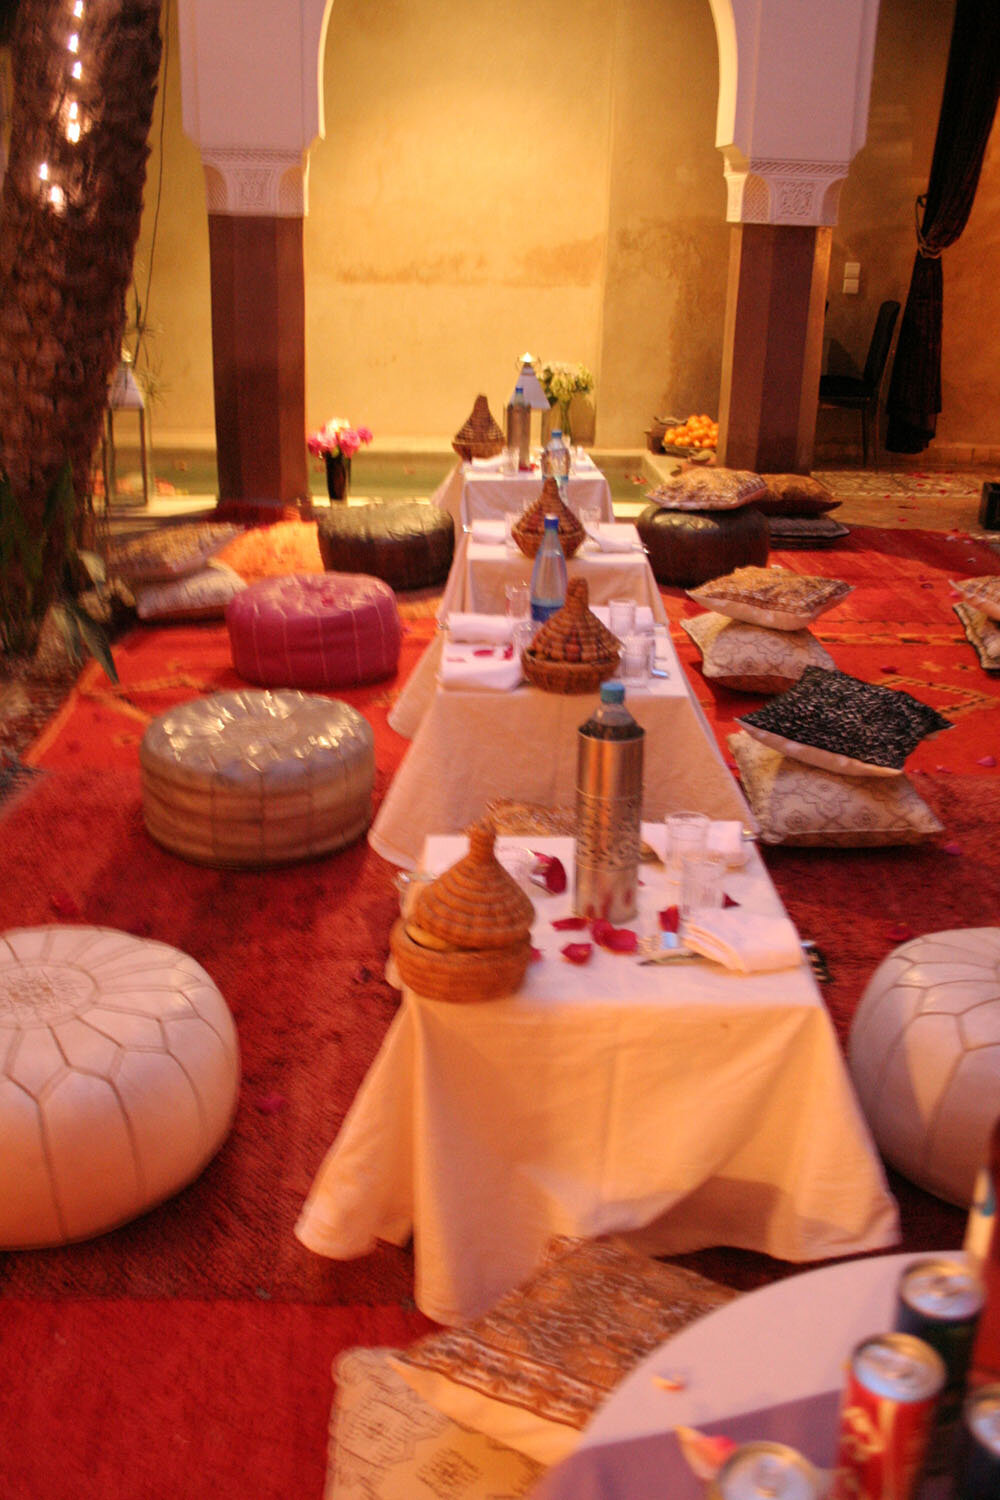 riad-zamzam-marrakech-spa-morocco-luxury-holiday-hotel-events-wedding-birthday-moroccan-special-occasion-celebrate-party-016.jpg